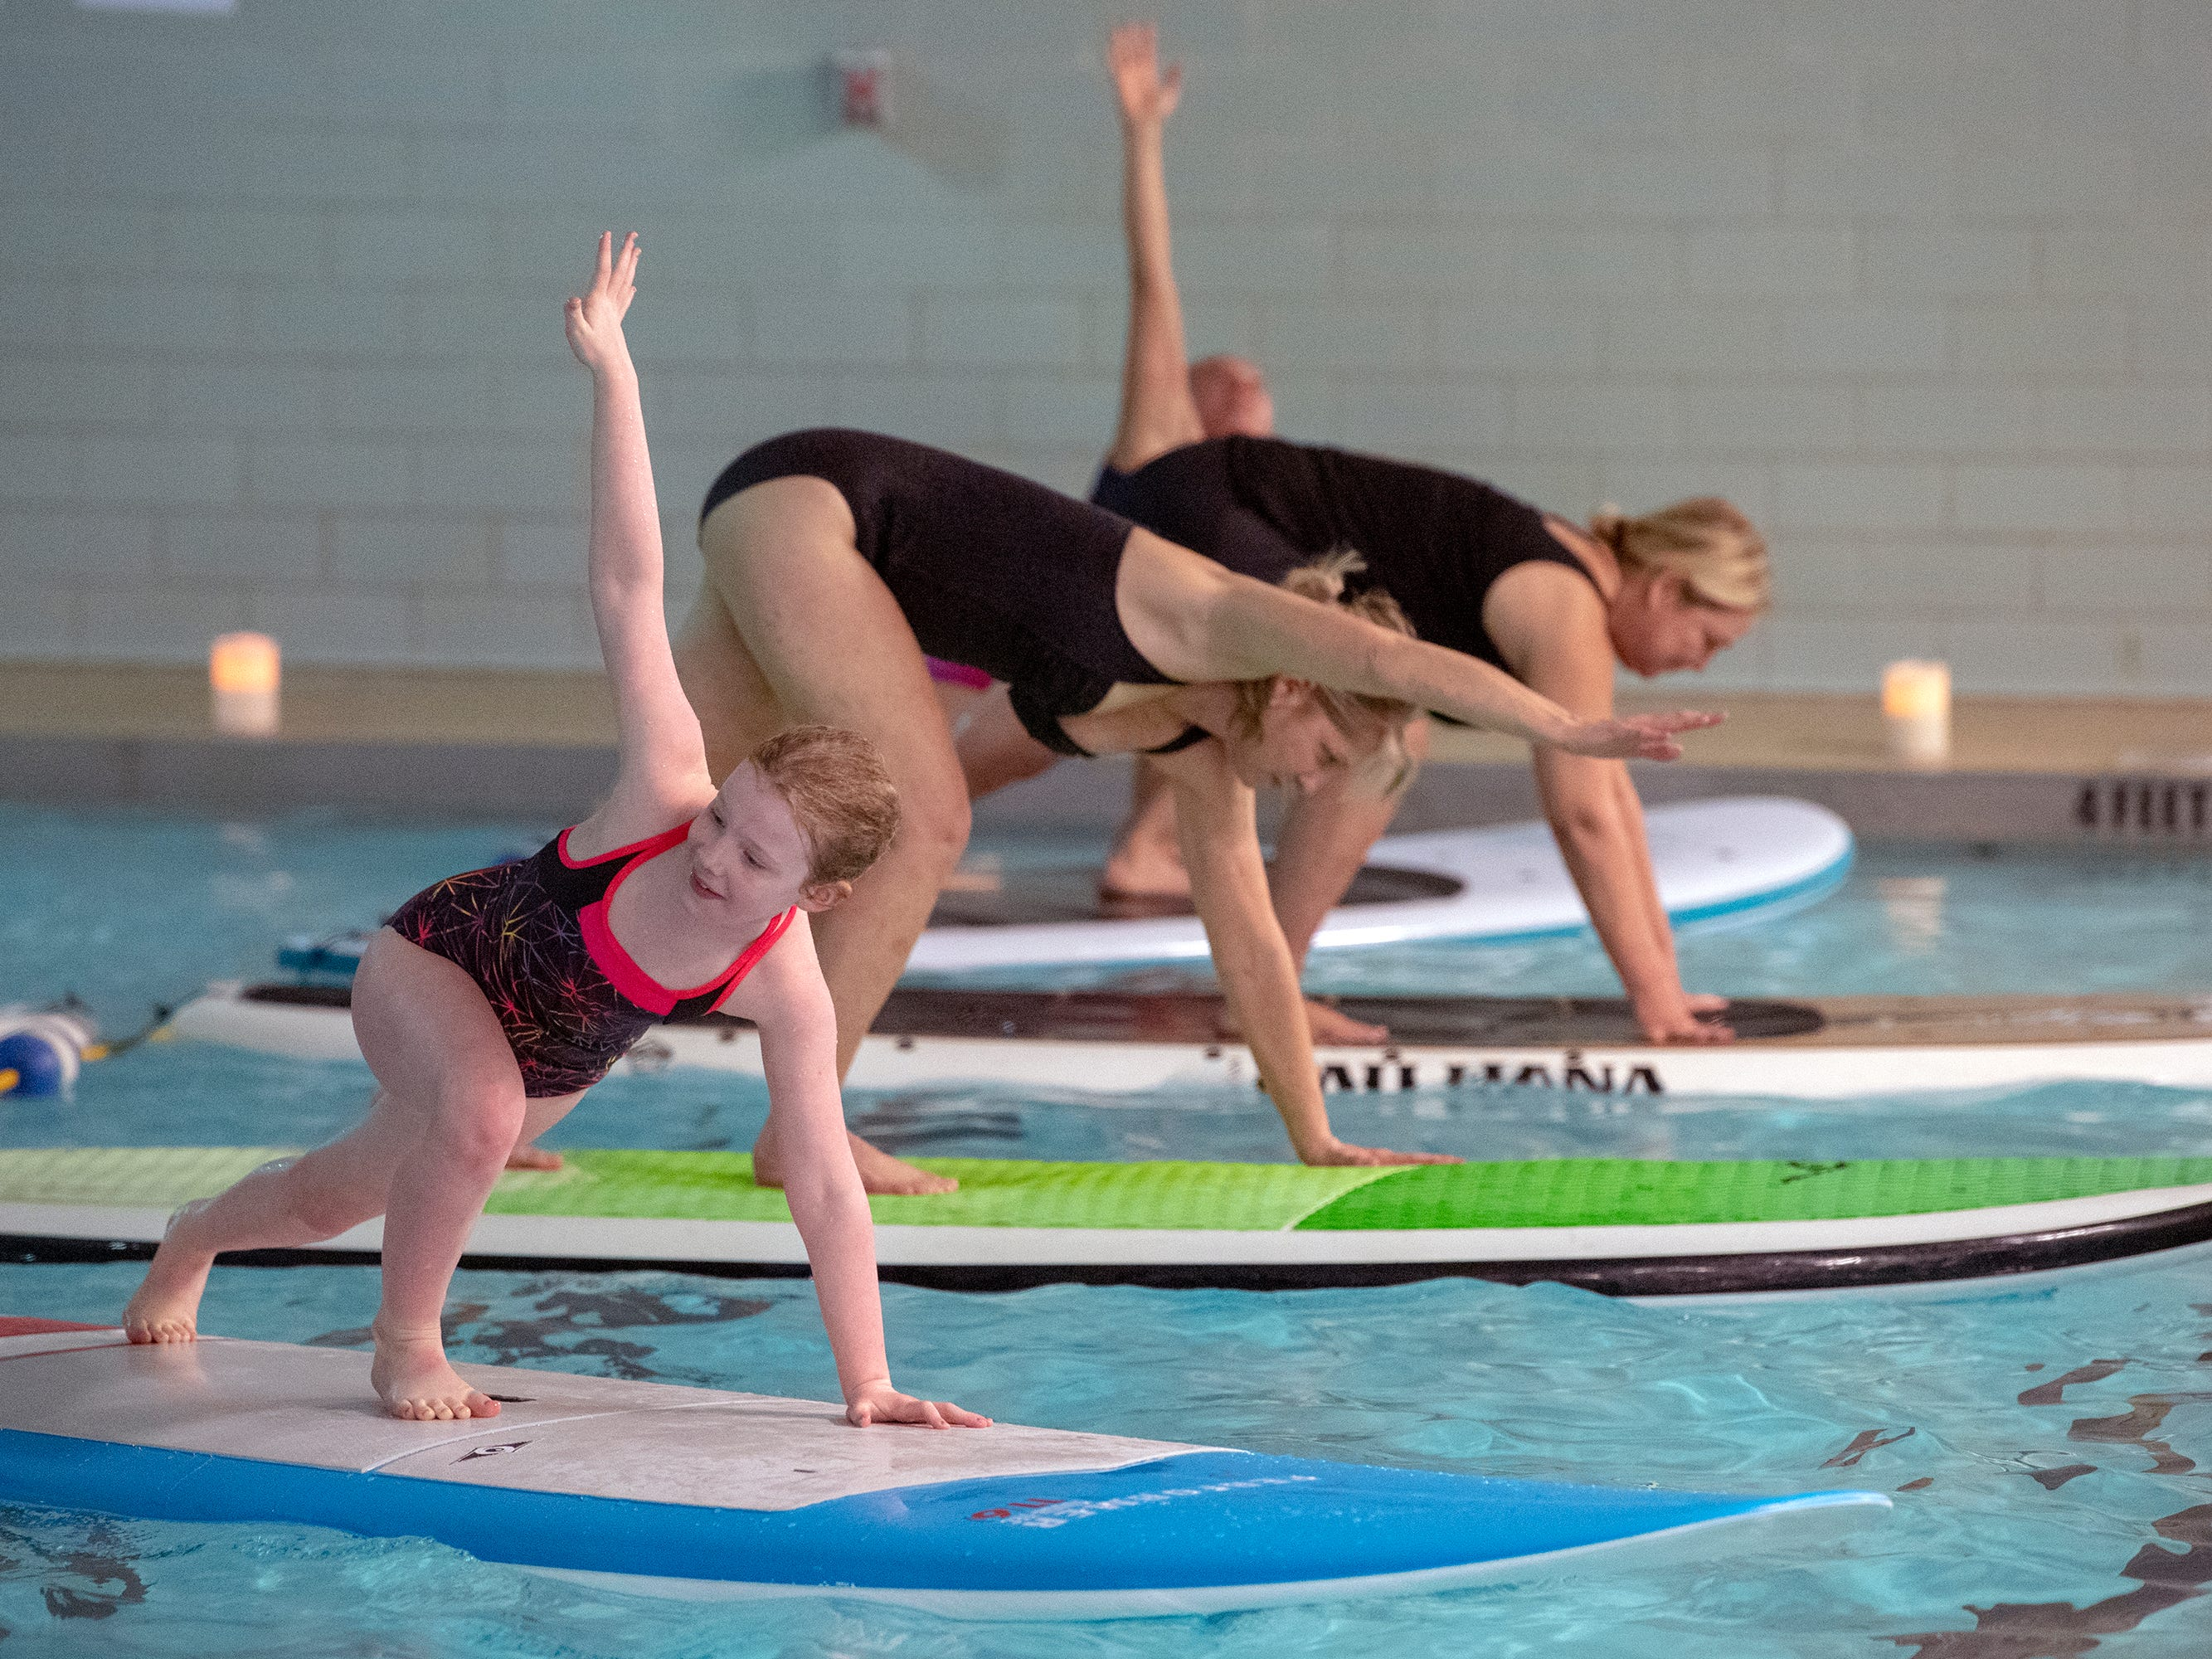 Marlowe Given, age 8 of York, at left, took the class with her mother Liz. The YWCA York is offering a Paddle Board Yoga Class in their pool for the first time. The class is offered on the open water by Shank's Mare in warmer weather.